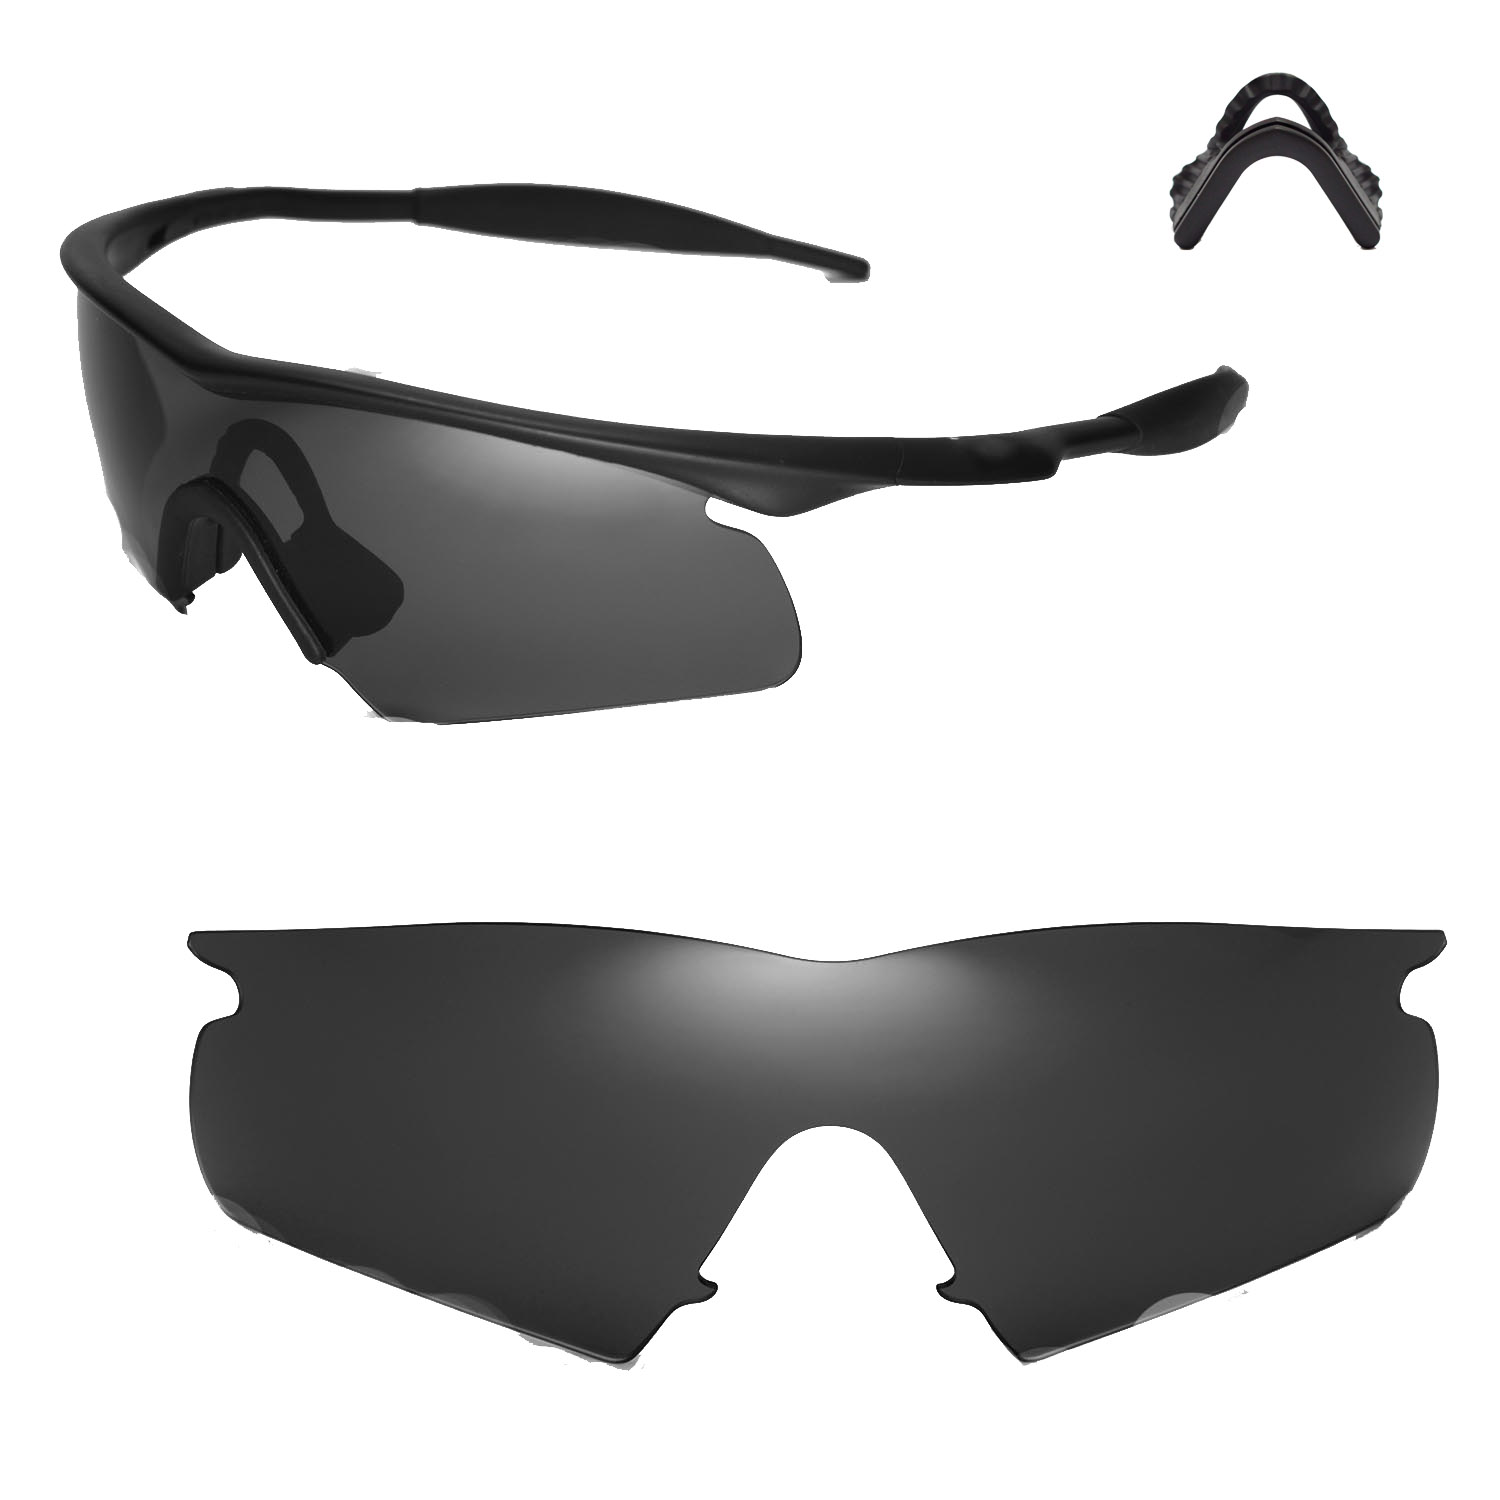 940dc924016 Details about New Walleva Black Replacement Lenses For Oakley New M Frame  Hybrid Sunglasses